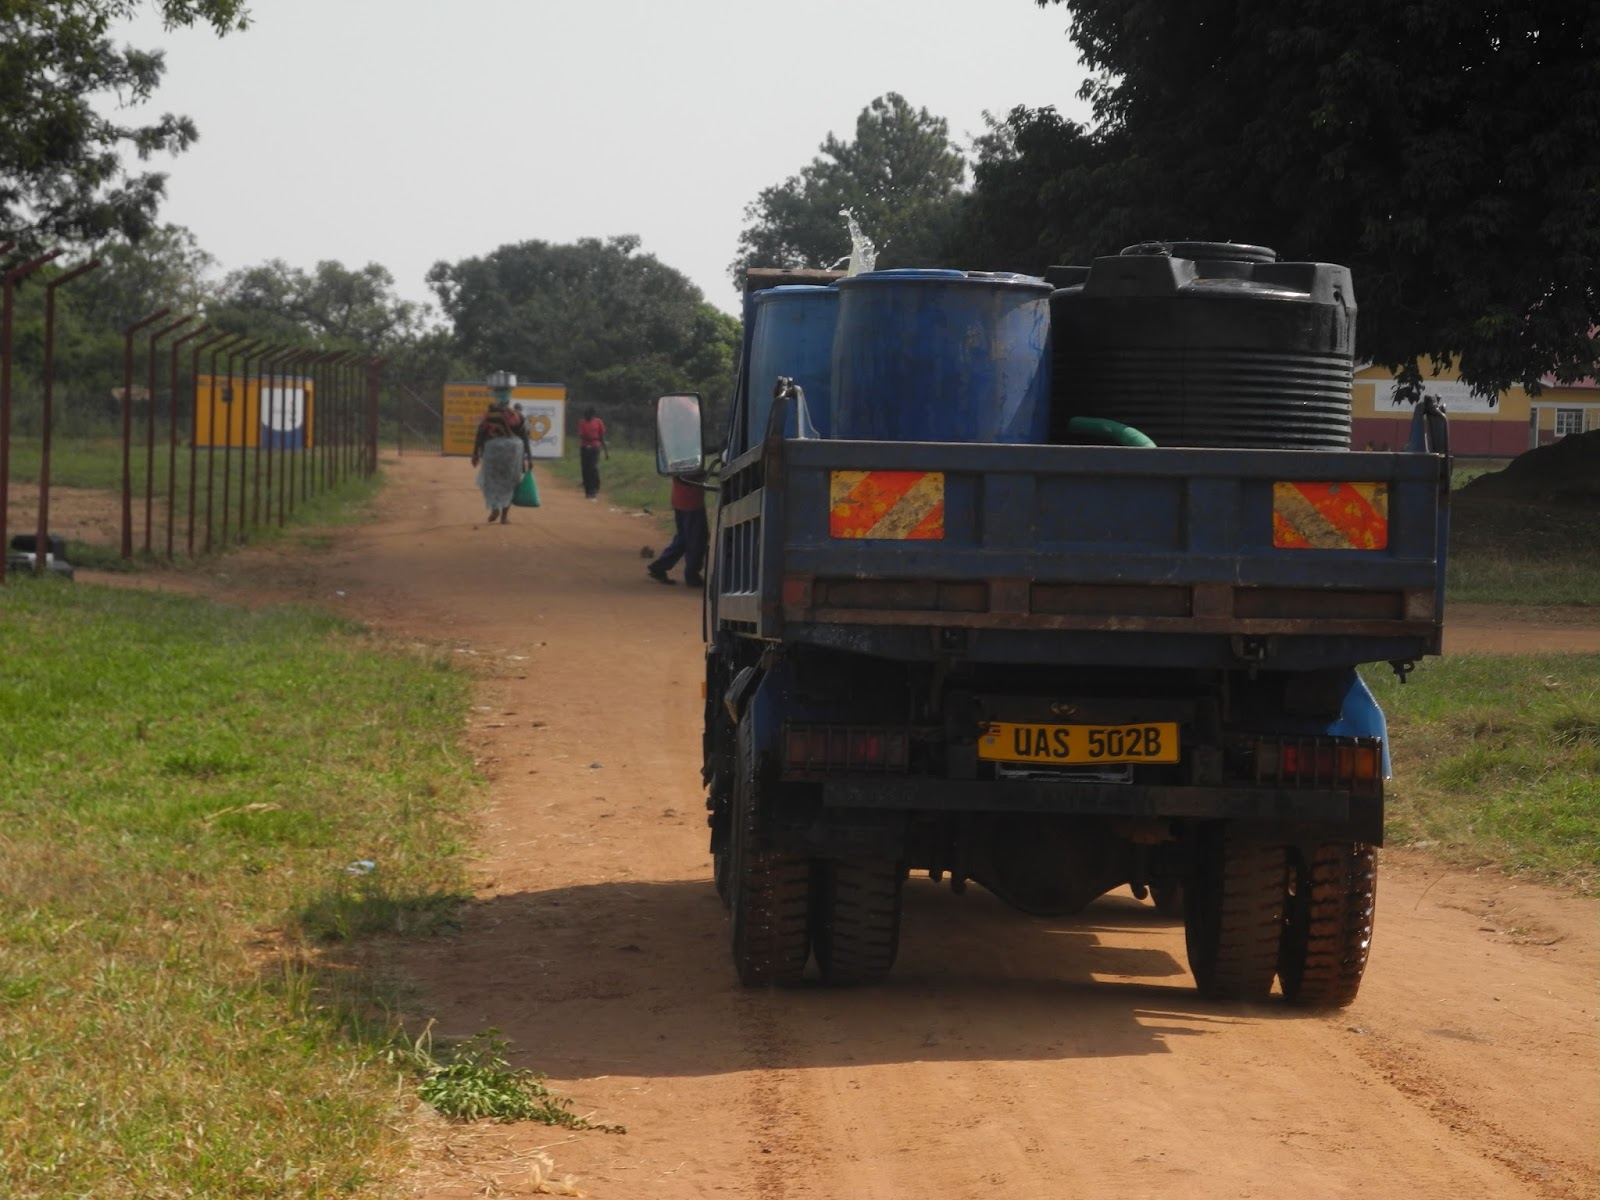 Change A Life Uganda The Story Of Water At St Lawrence School And - Uas-frances